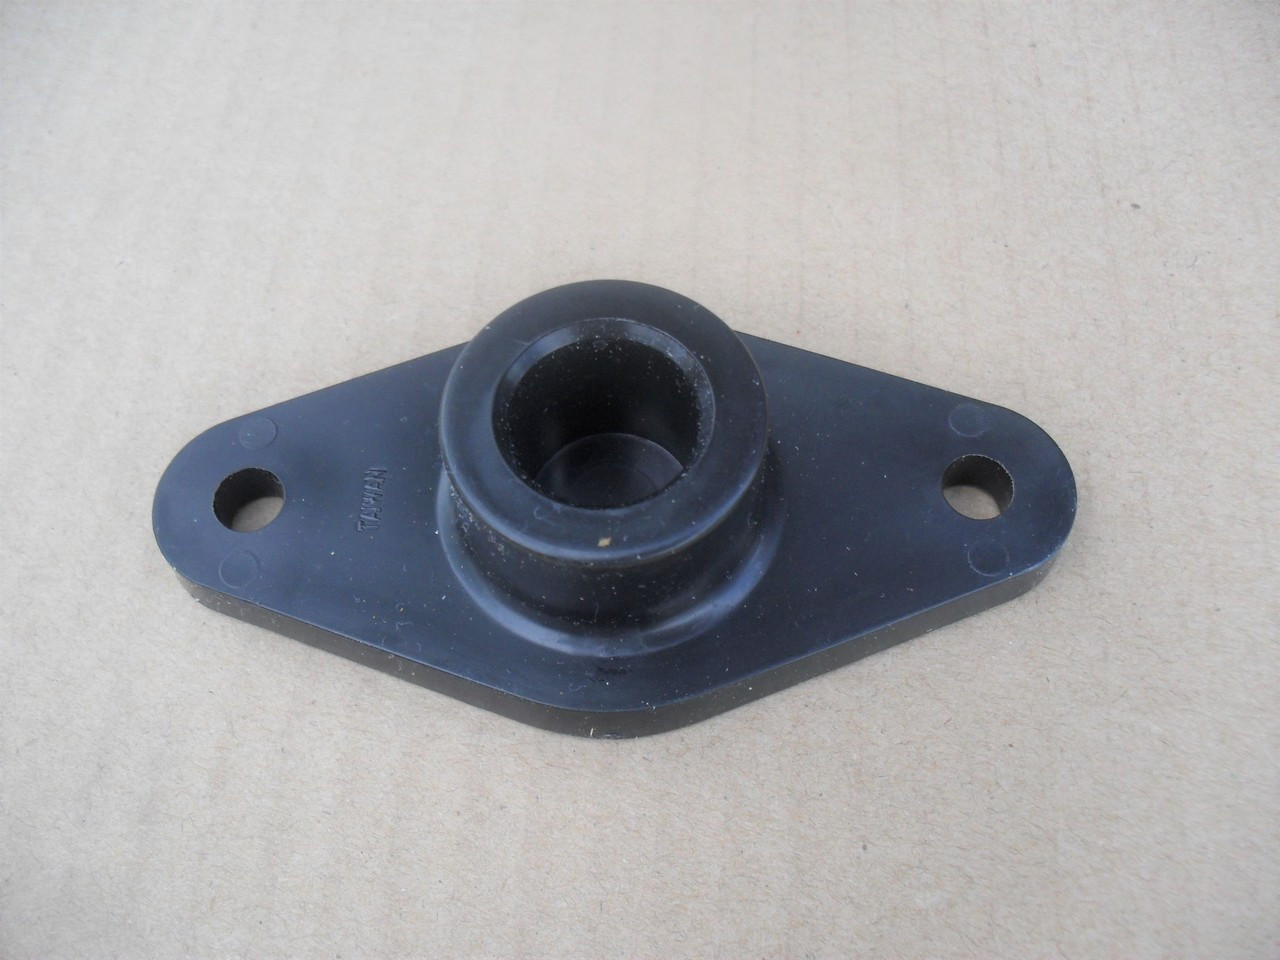 Auger Bushing Bearing for Murray 577023, 577023MA Snowblower, snowthrower, snow blower thrower